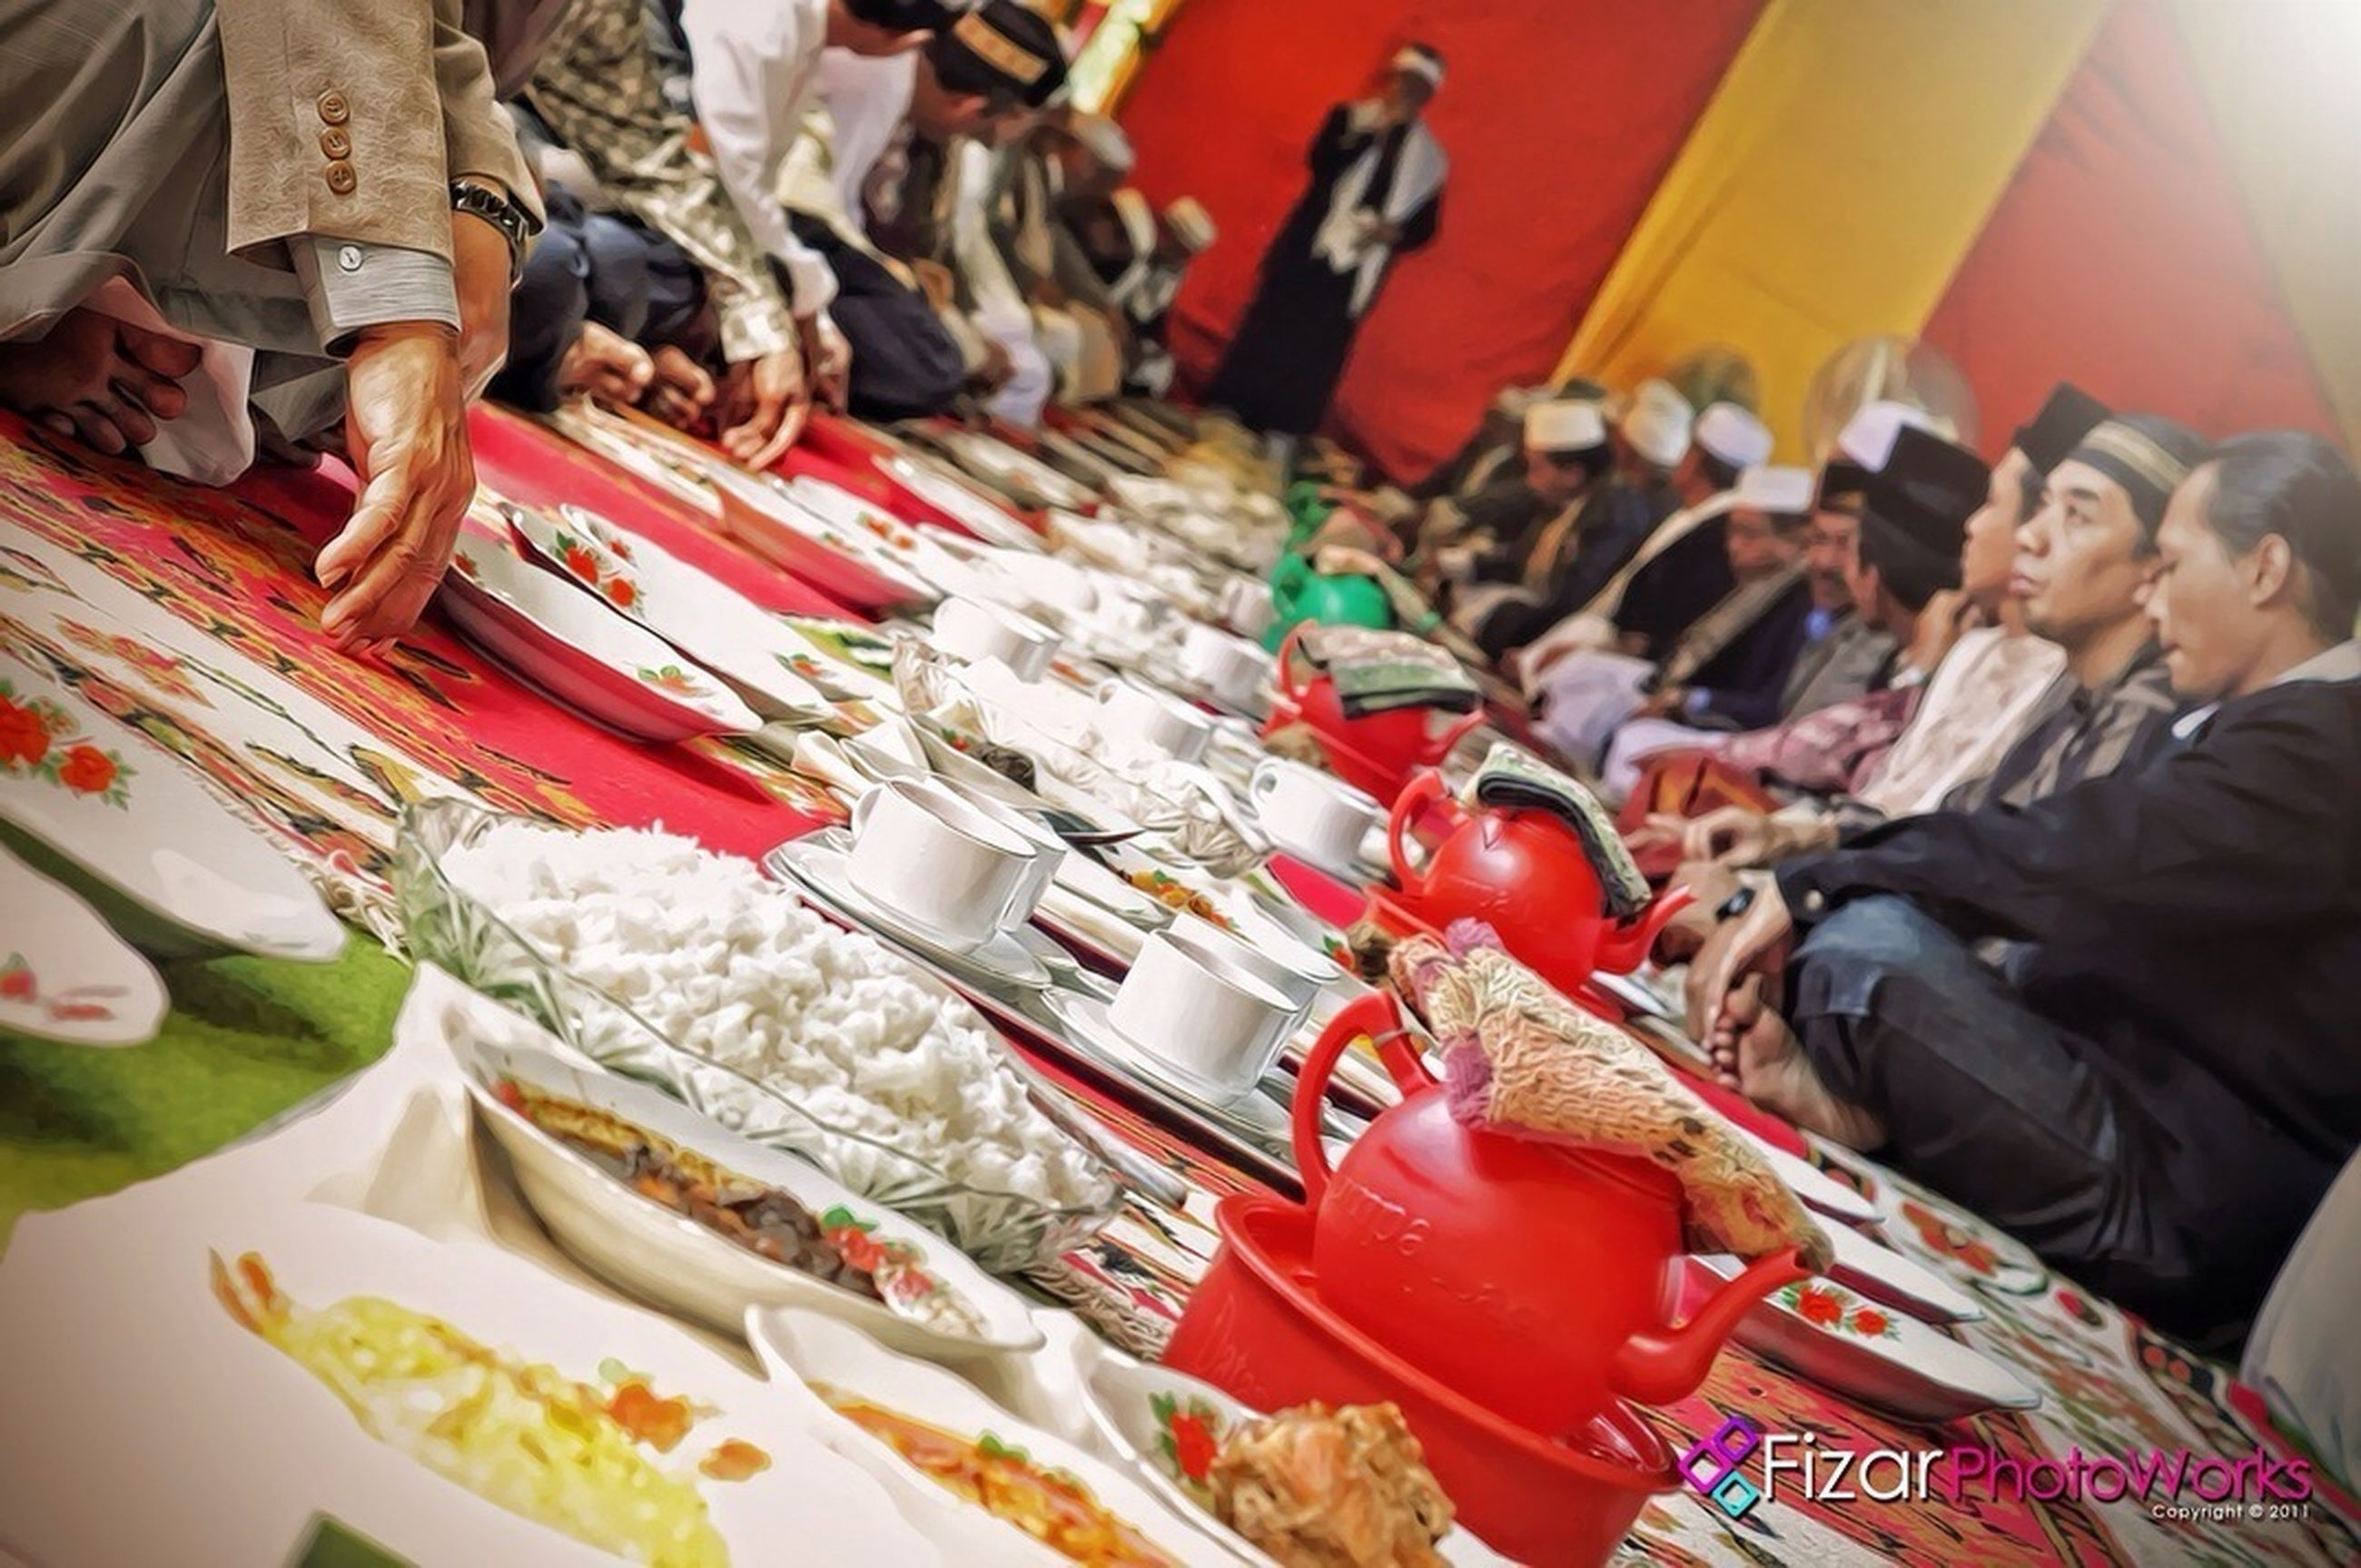 indoors, large group of objects, lifestyles, retail, variation, for sale, red, leisure activity, high angle view, choice, market, men, food and drink, abundance, market stall, sale, cultures, food